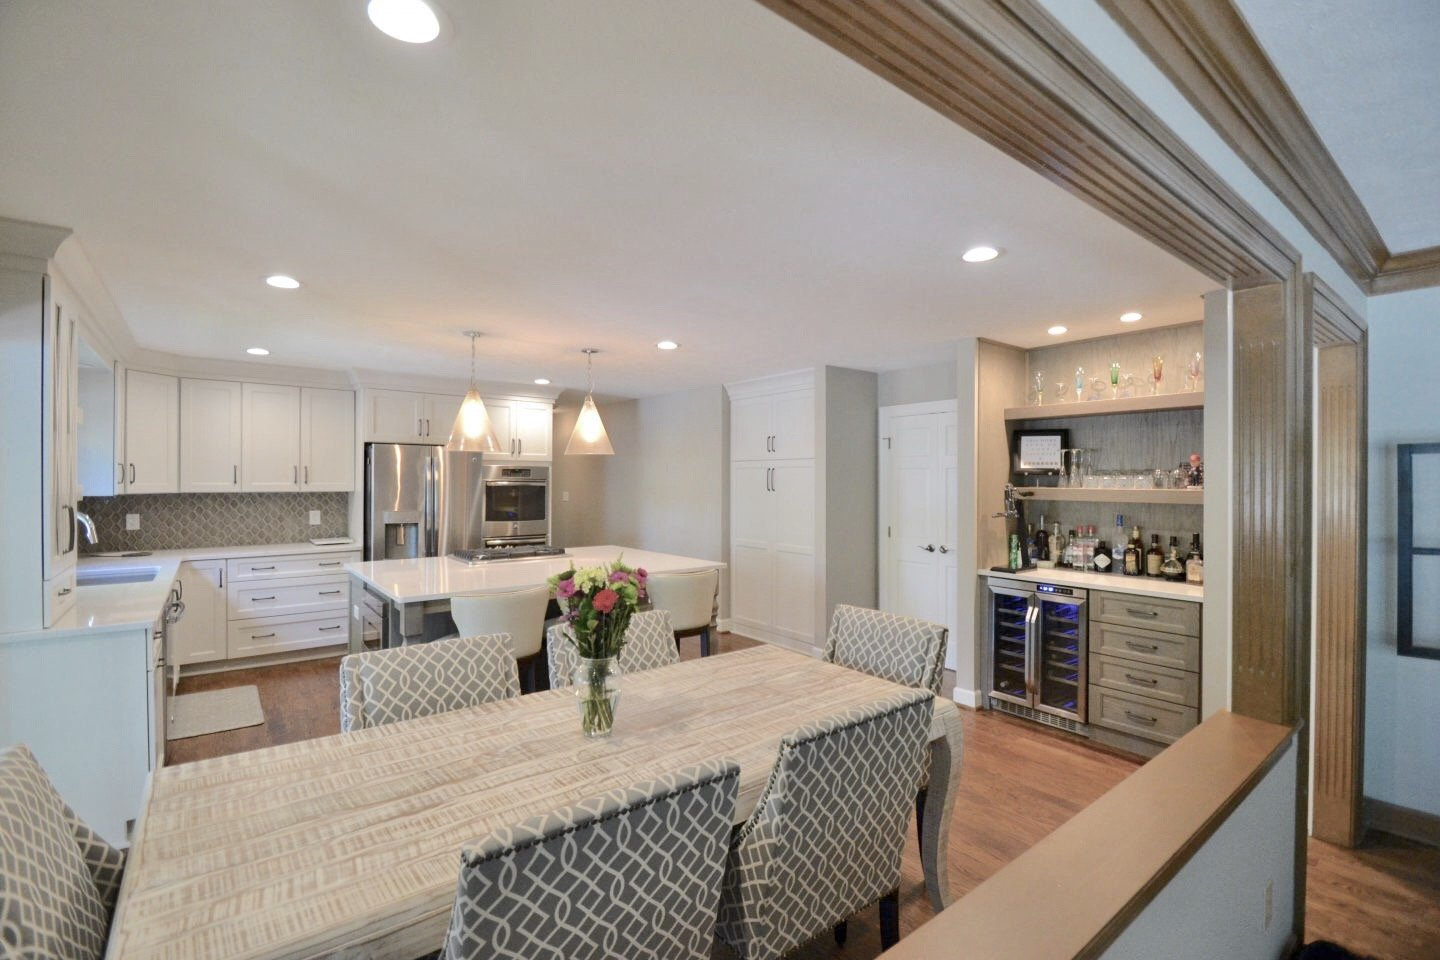 Mullins Kitchen Remodel (before and after photos) Carmel - ACo